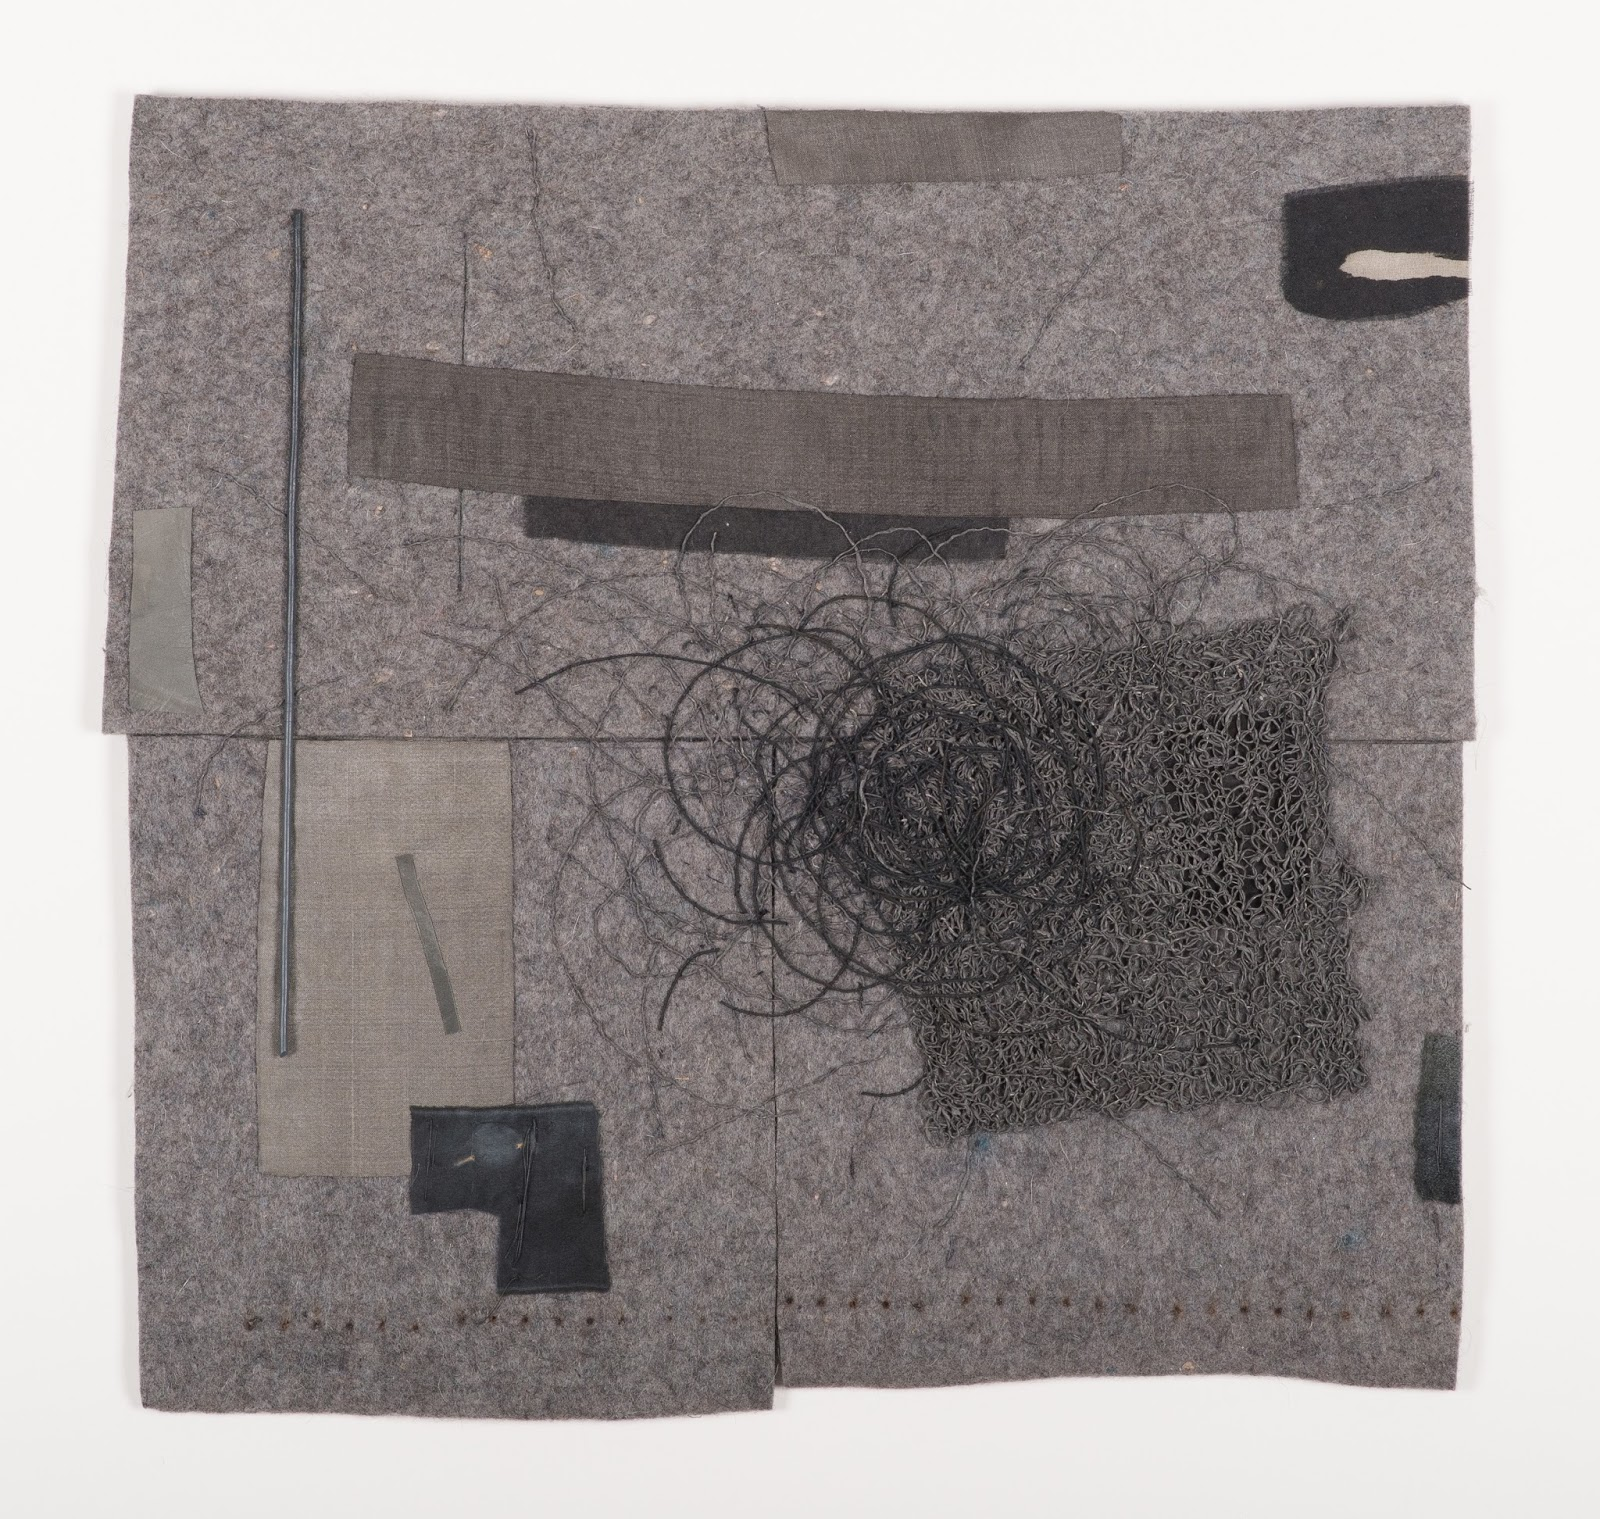 "Michael Olszewski, The Disturbance, Wool felt, silk, linen, metal, hand stitching, appliqué and paint, 29.625"" x 29.125"" (framed), 2014"